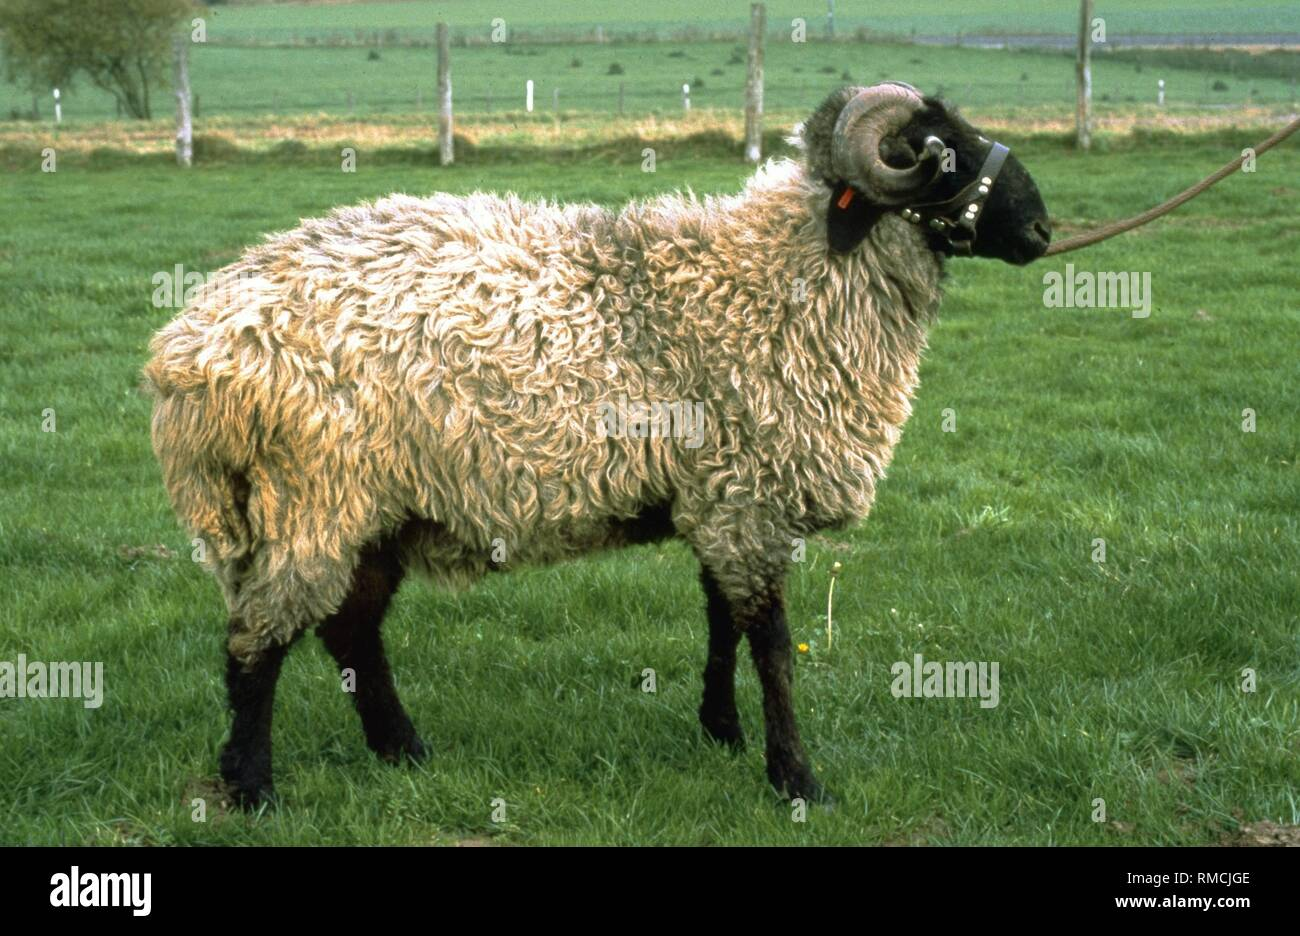 Karakul Wool Stock Photos   Karakul Wool Stock Images - Alamy 9e138e7b0baa